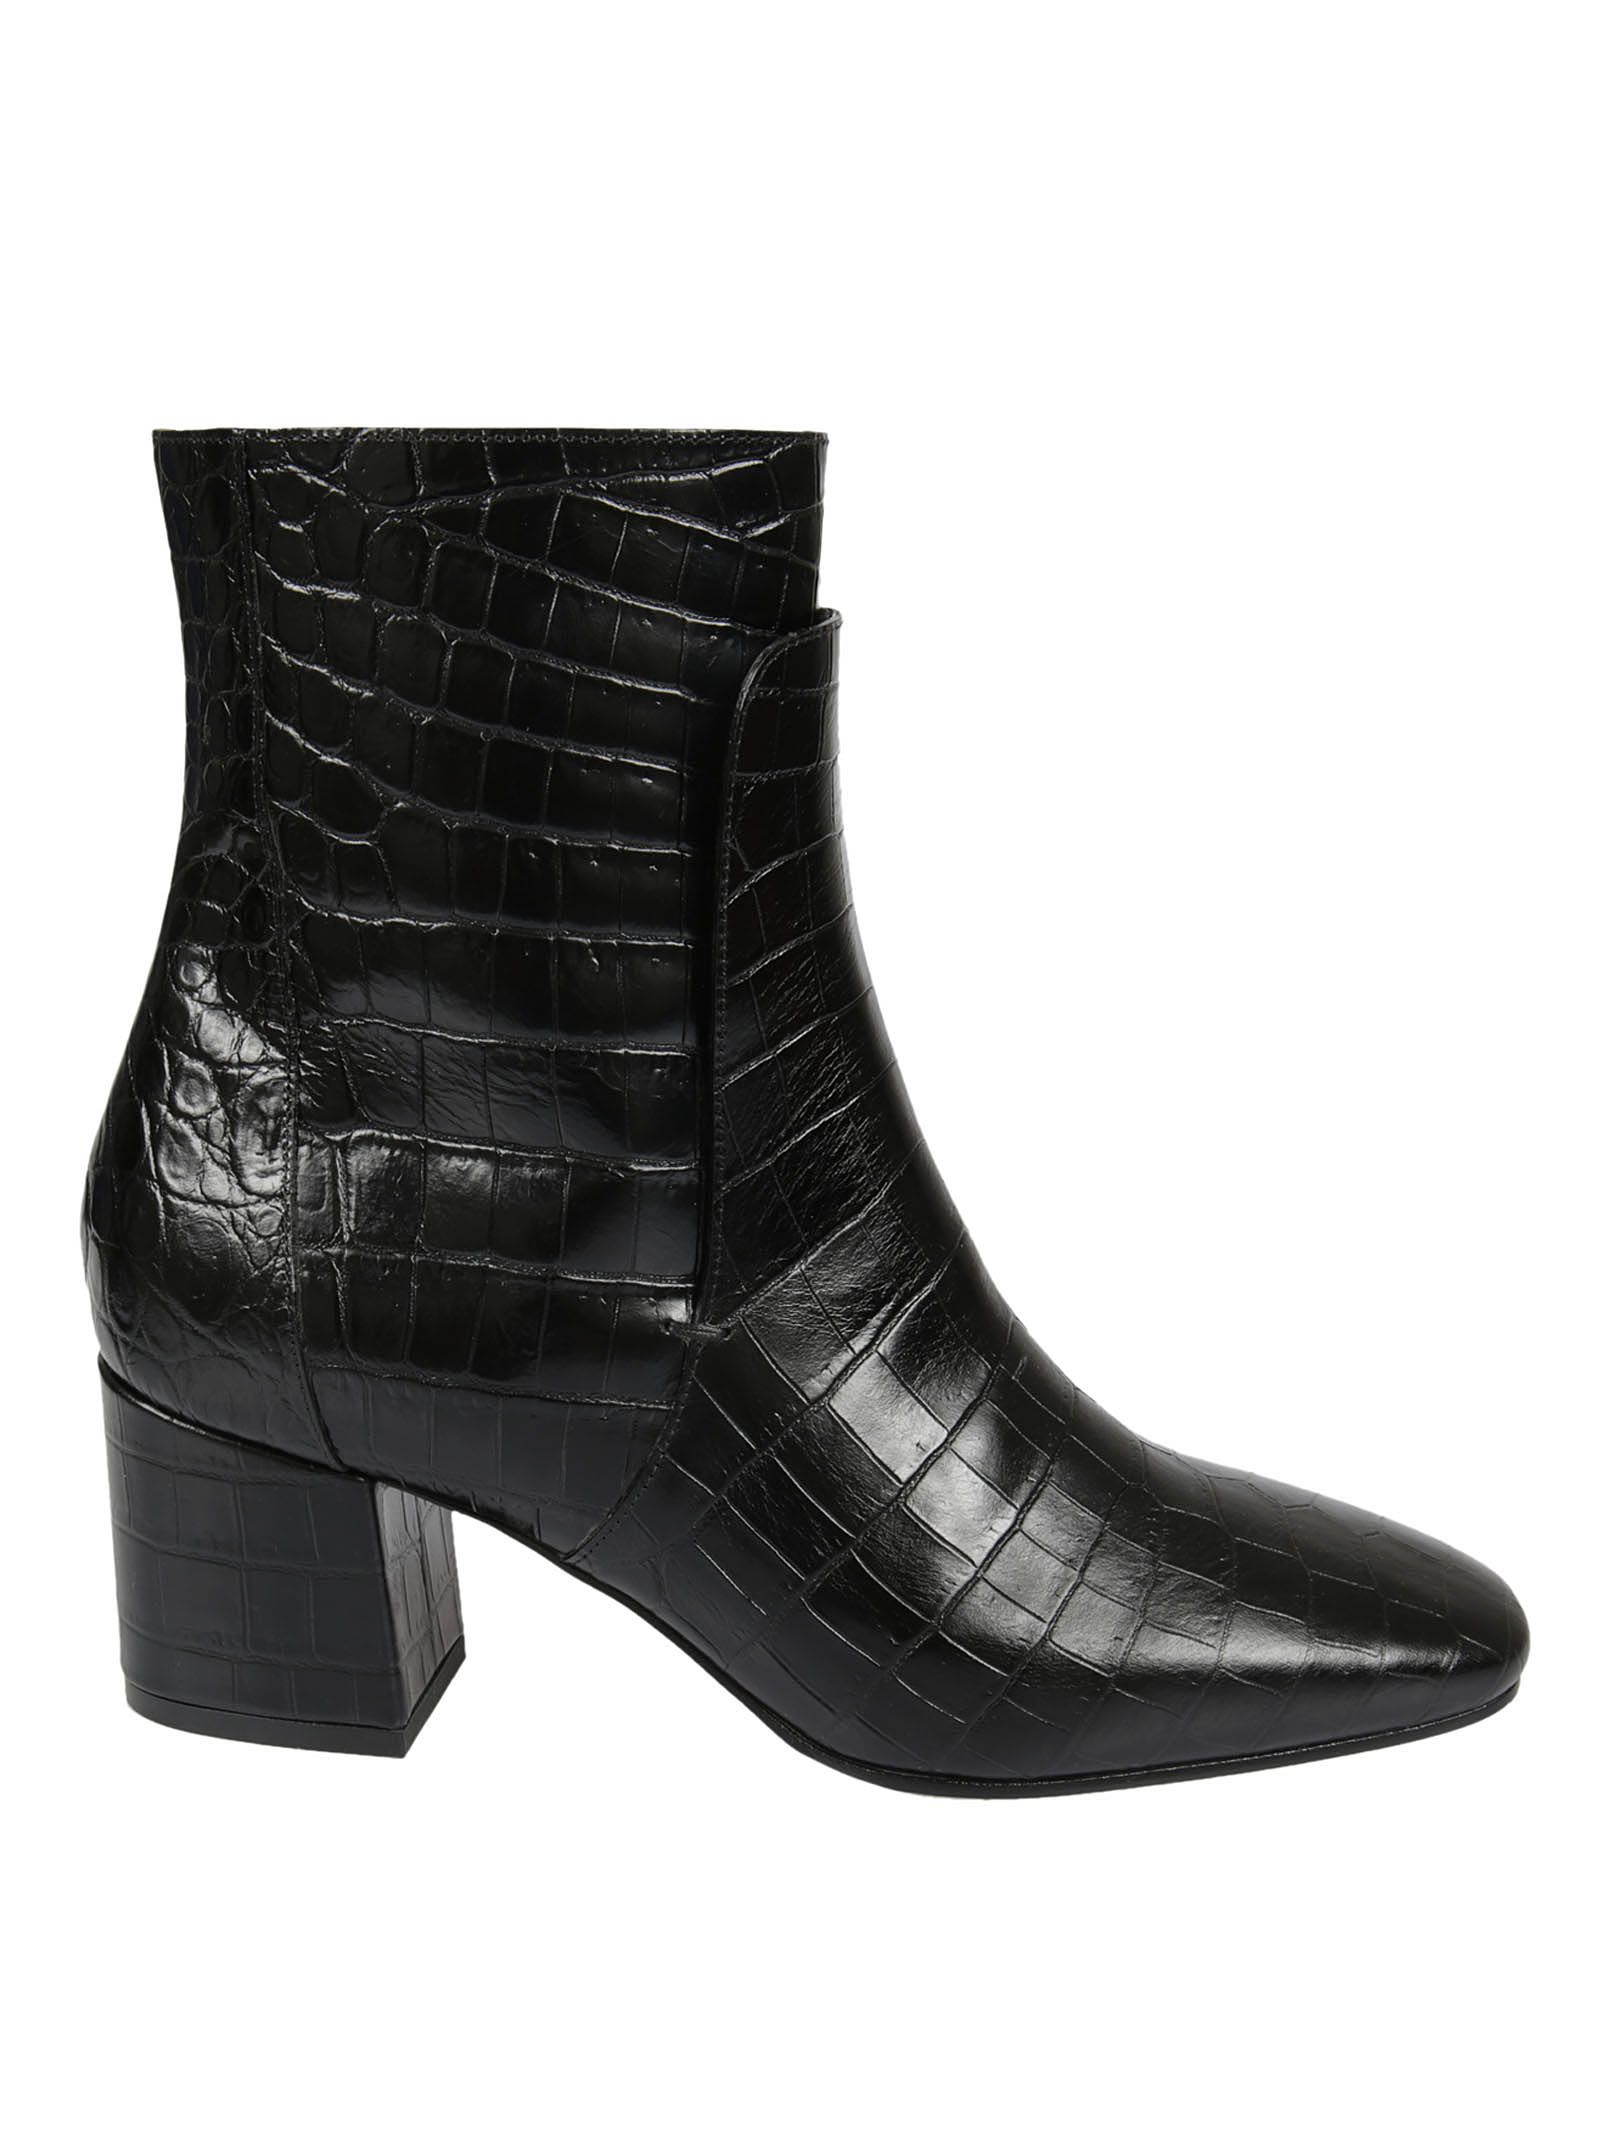 Givenchy Crocodile Effect Ankle Boots - Givenchy - Lulu